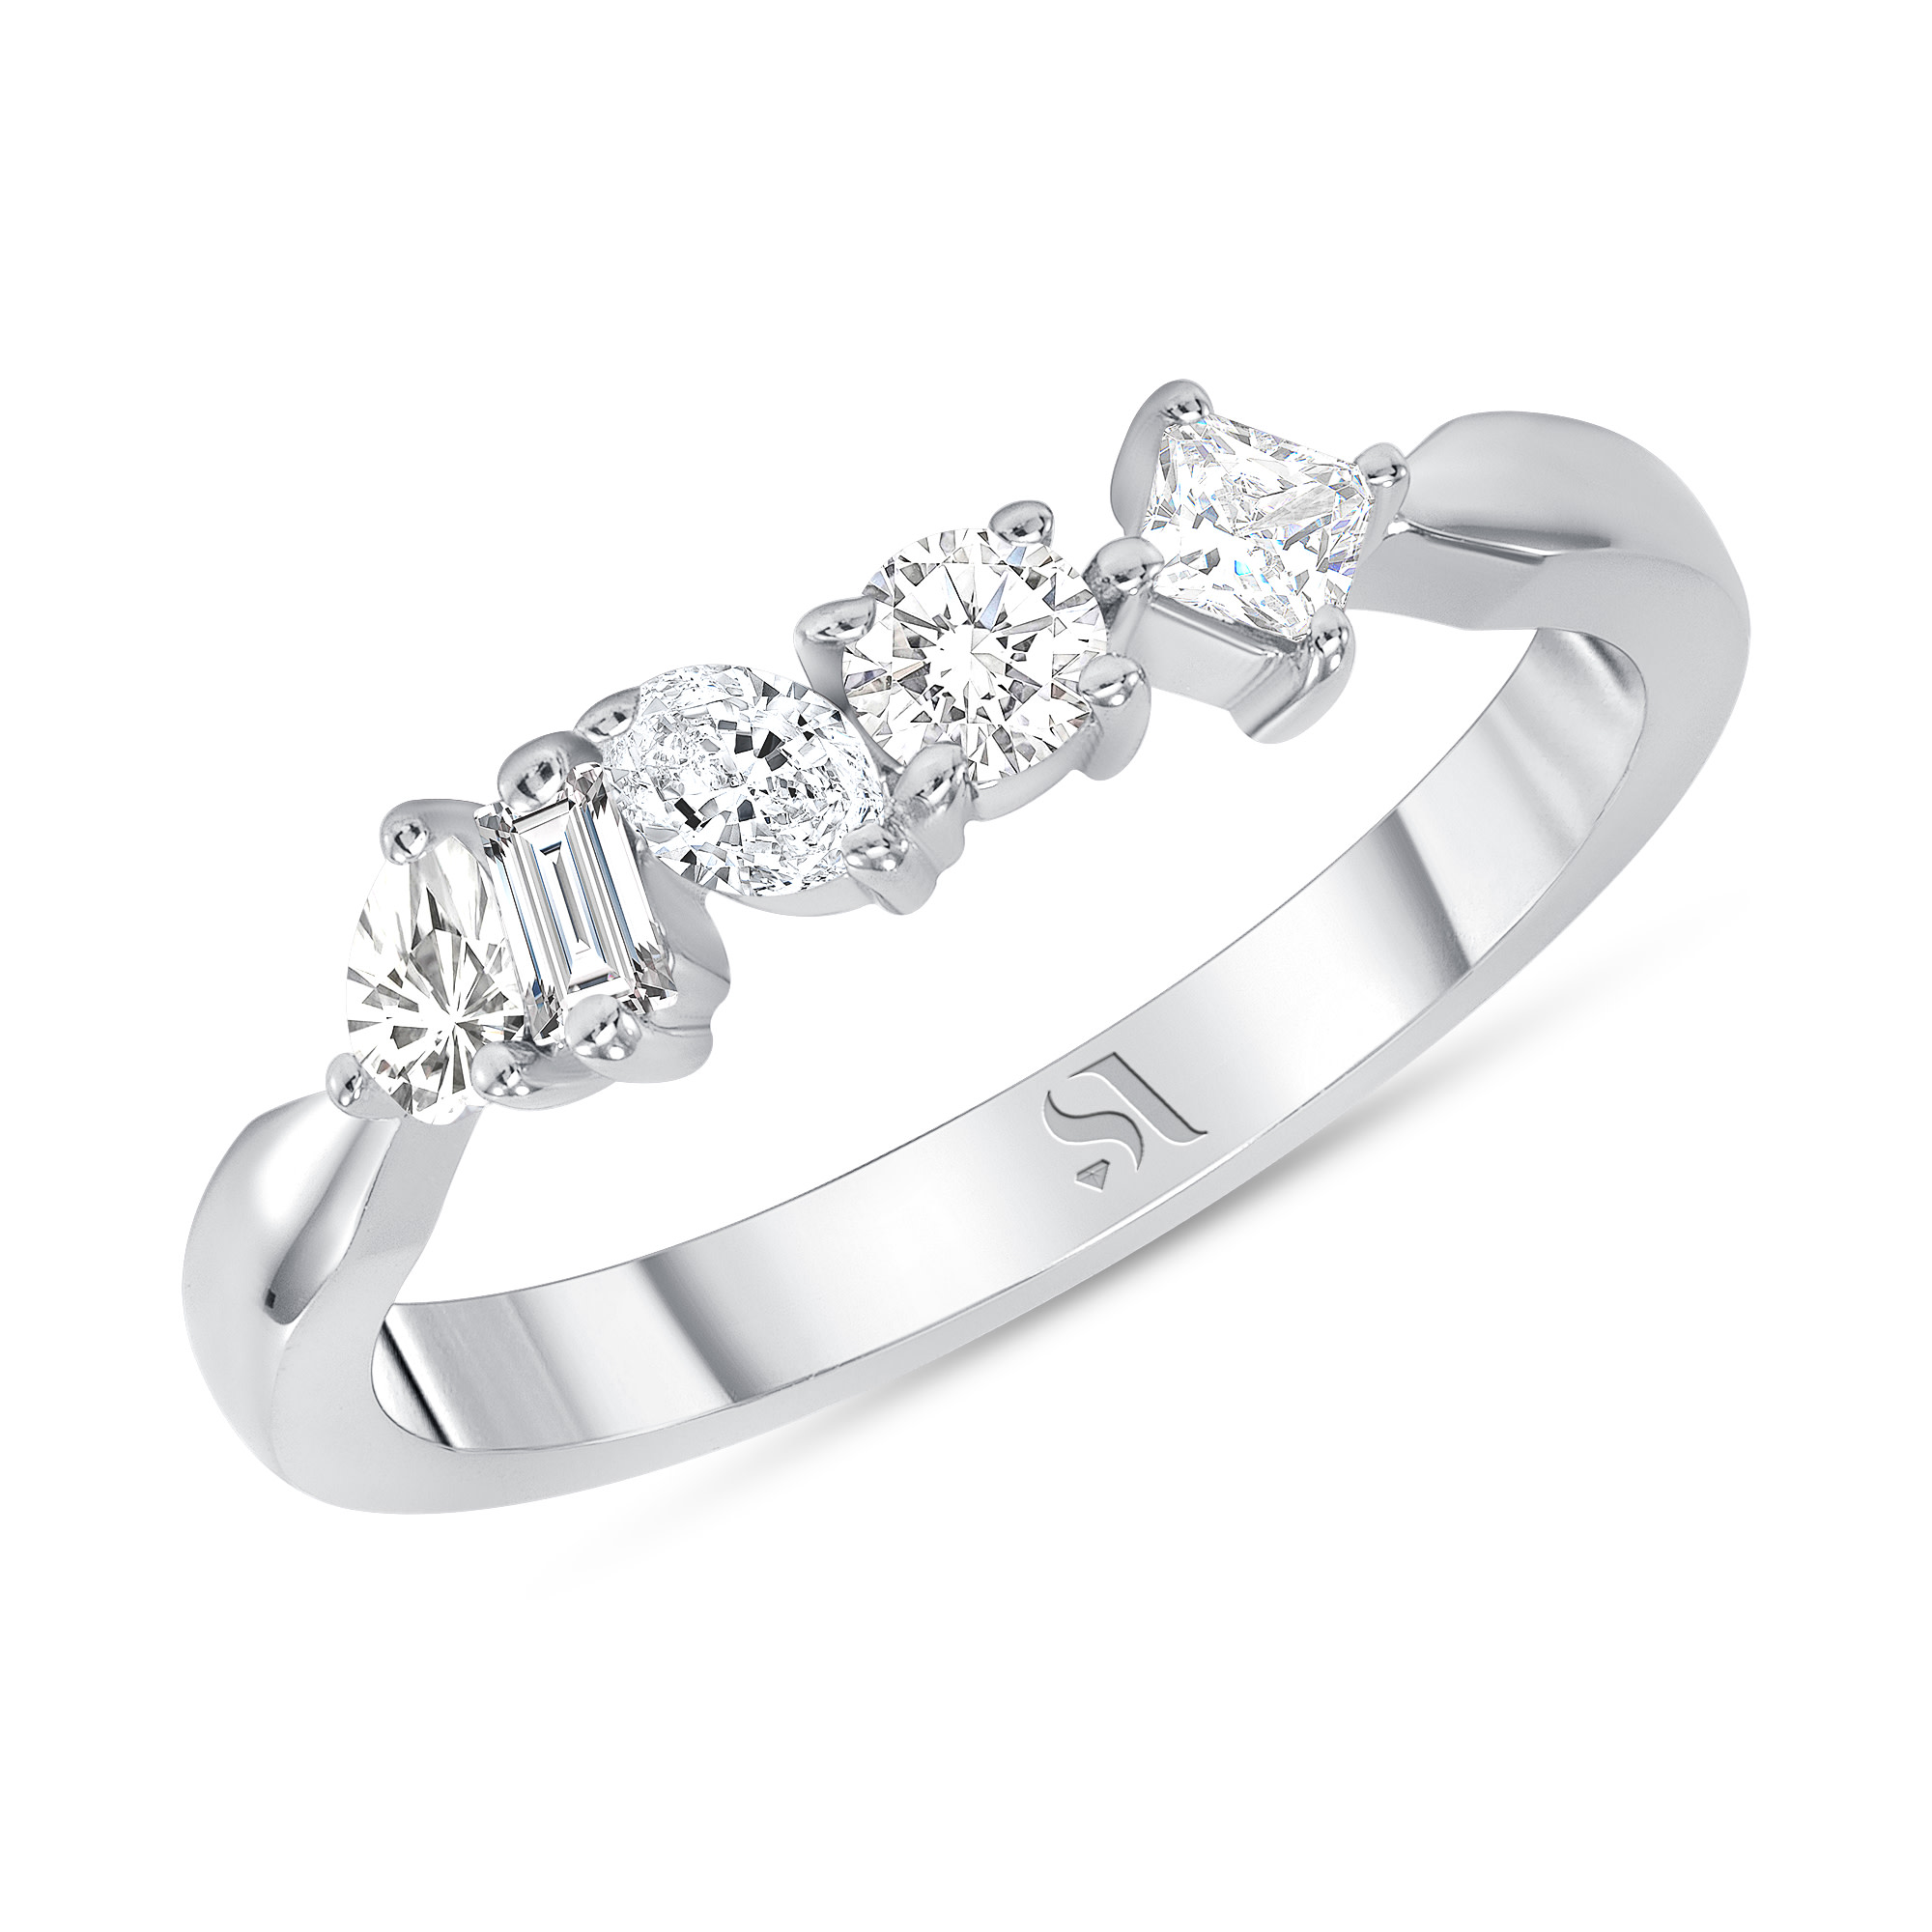 Fancy Shapes Diamond Ring White Gold